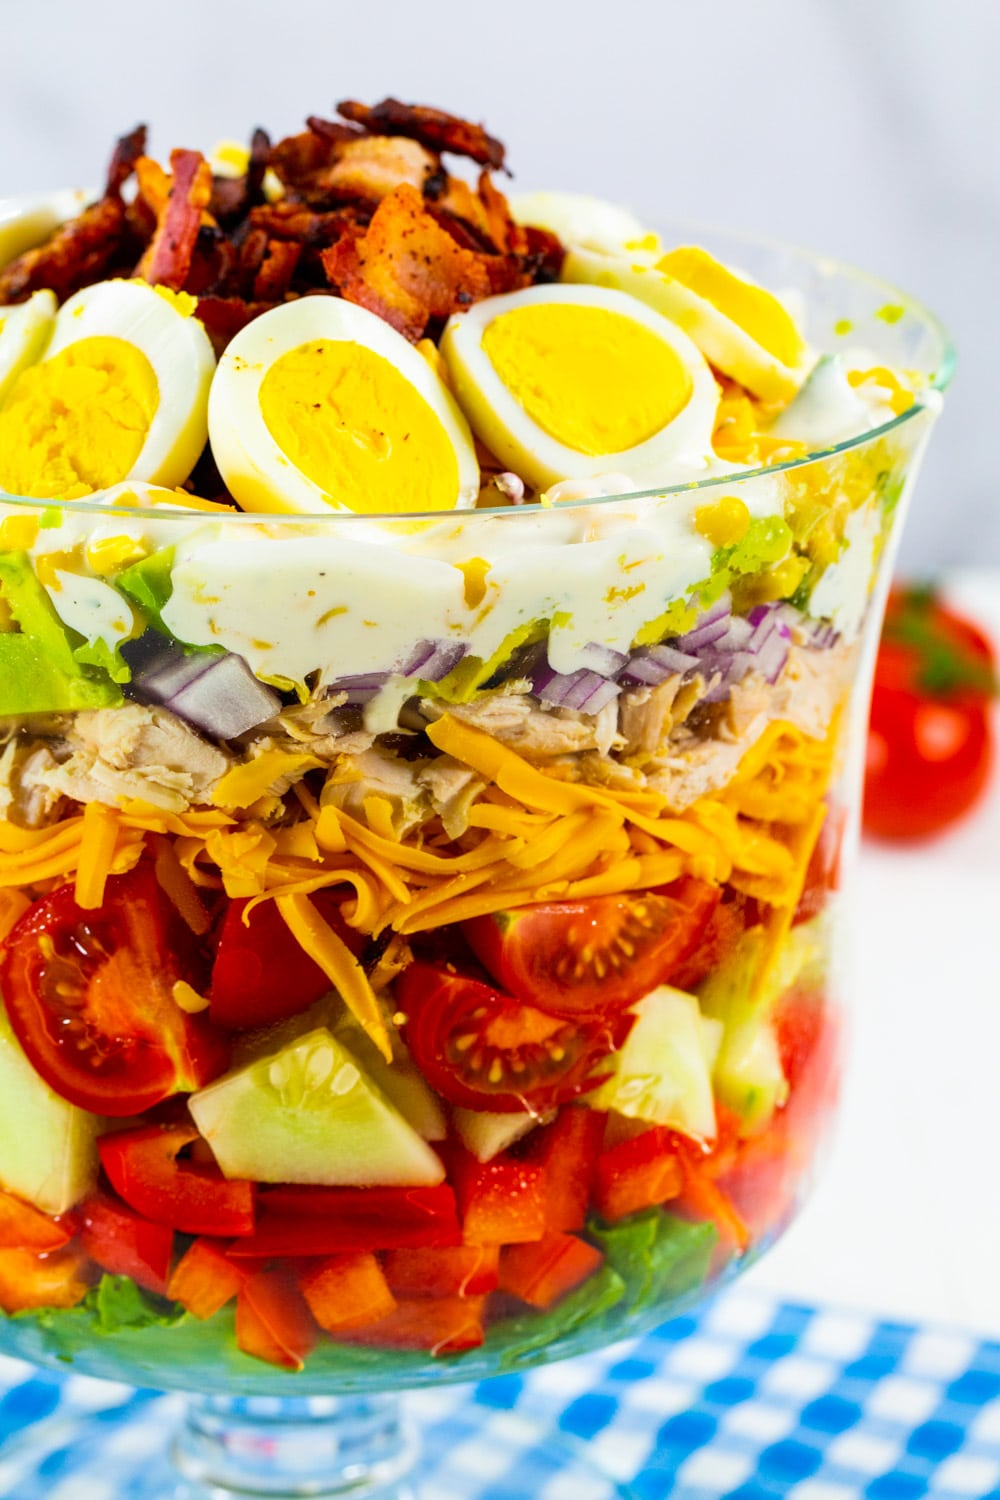 Chicken Bacon Ranch Layer Salad in a glass trifle bowl.